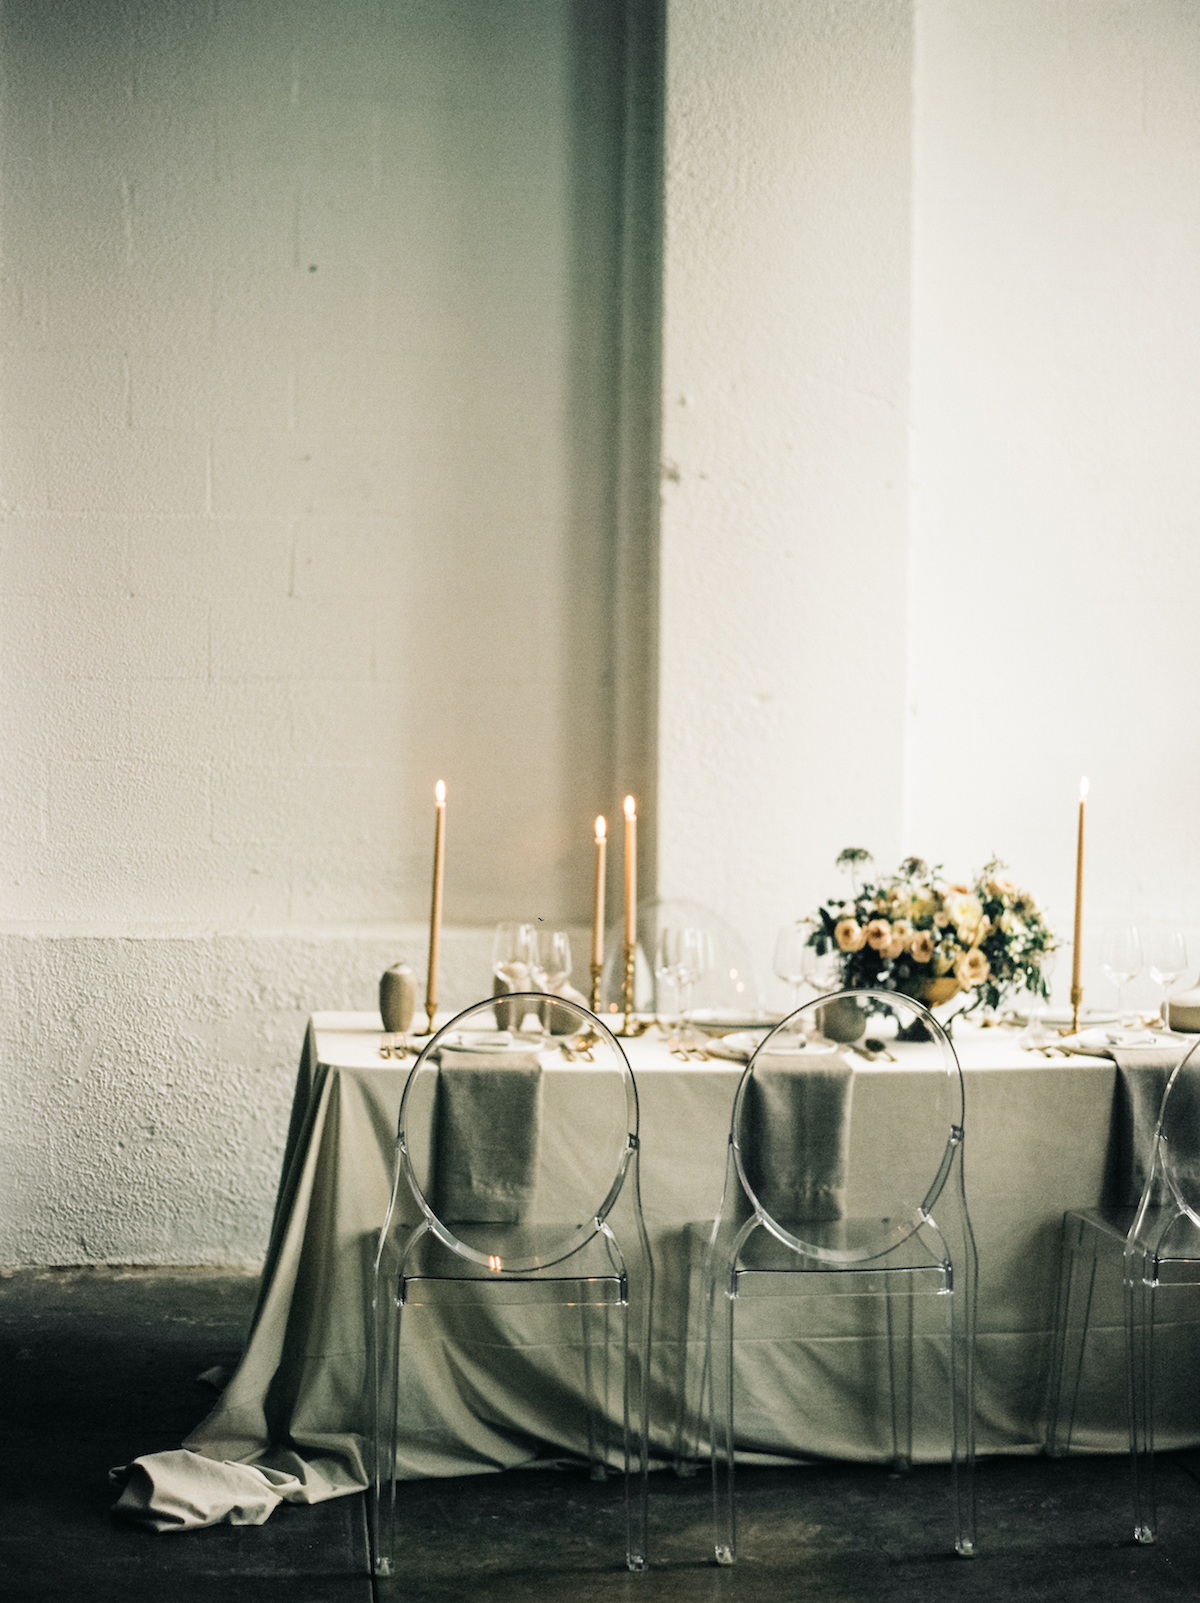 Ira and Lucy Wedding Planner, Kendra Elise Photography, Film Fine Art